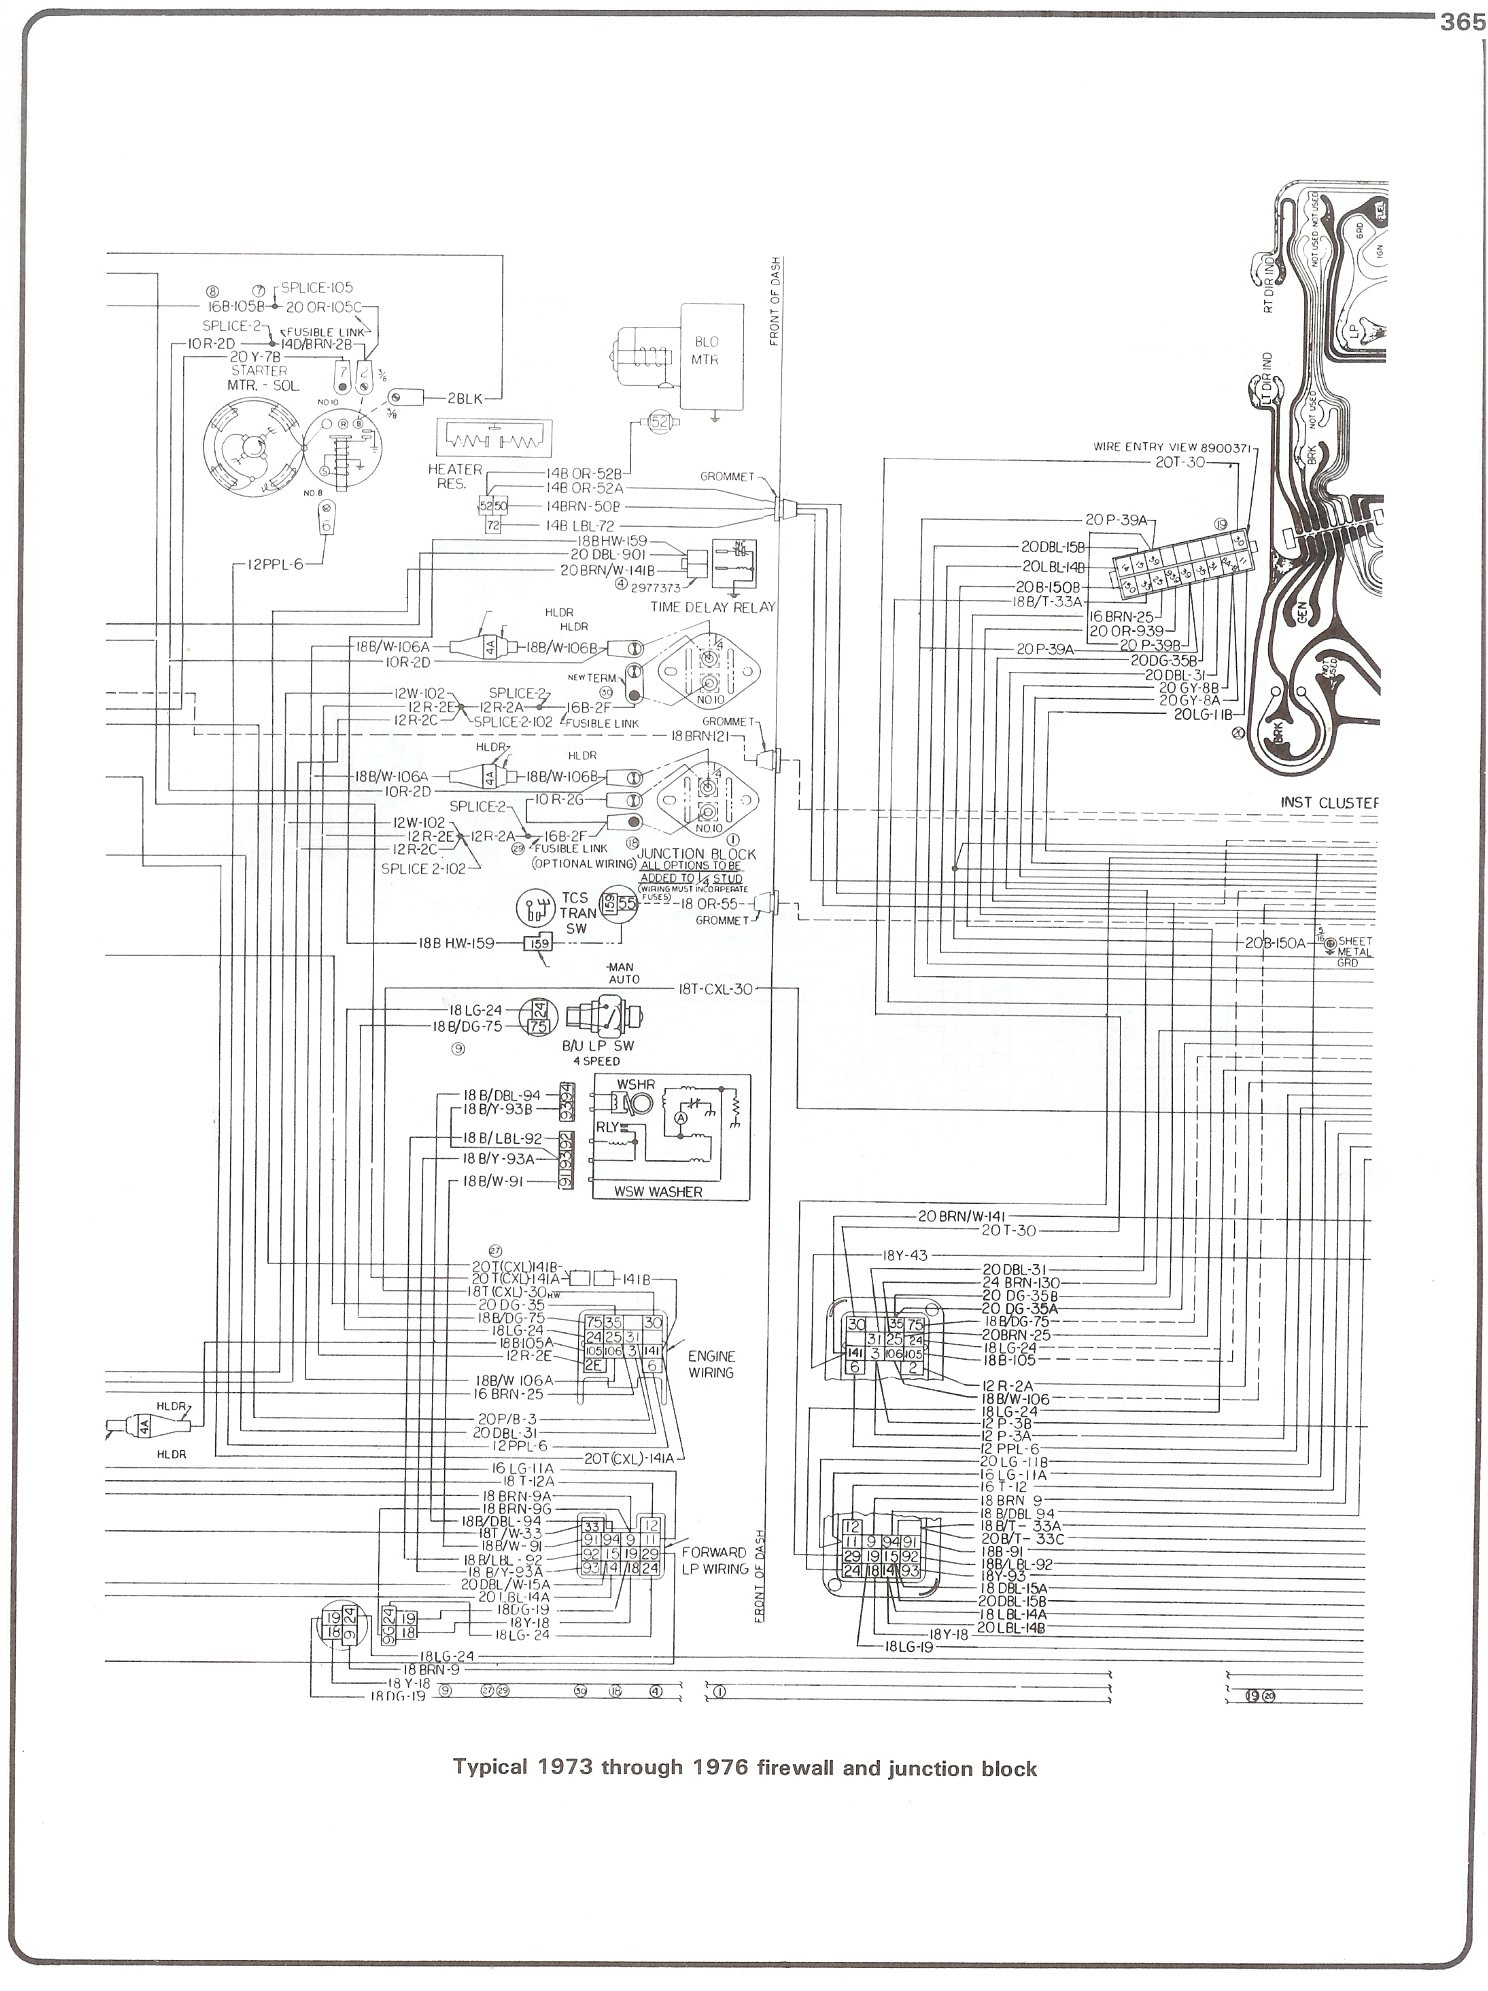 83 chevy truck wiring diagram private sharing about wiring diagram u2022 rh  caraccessoriesandsoftware co uk 1983 chevy c10 fuse box diagram 1983 chevy  c10 ...